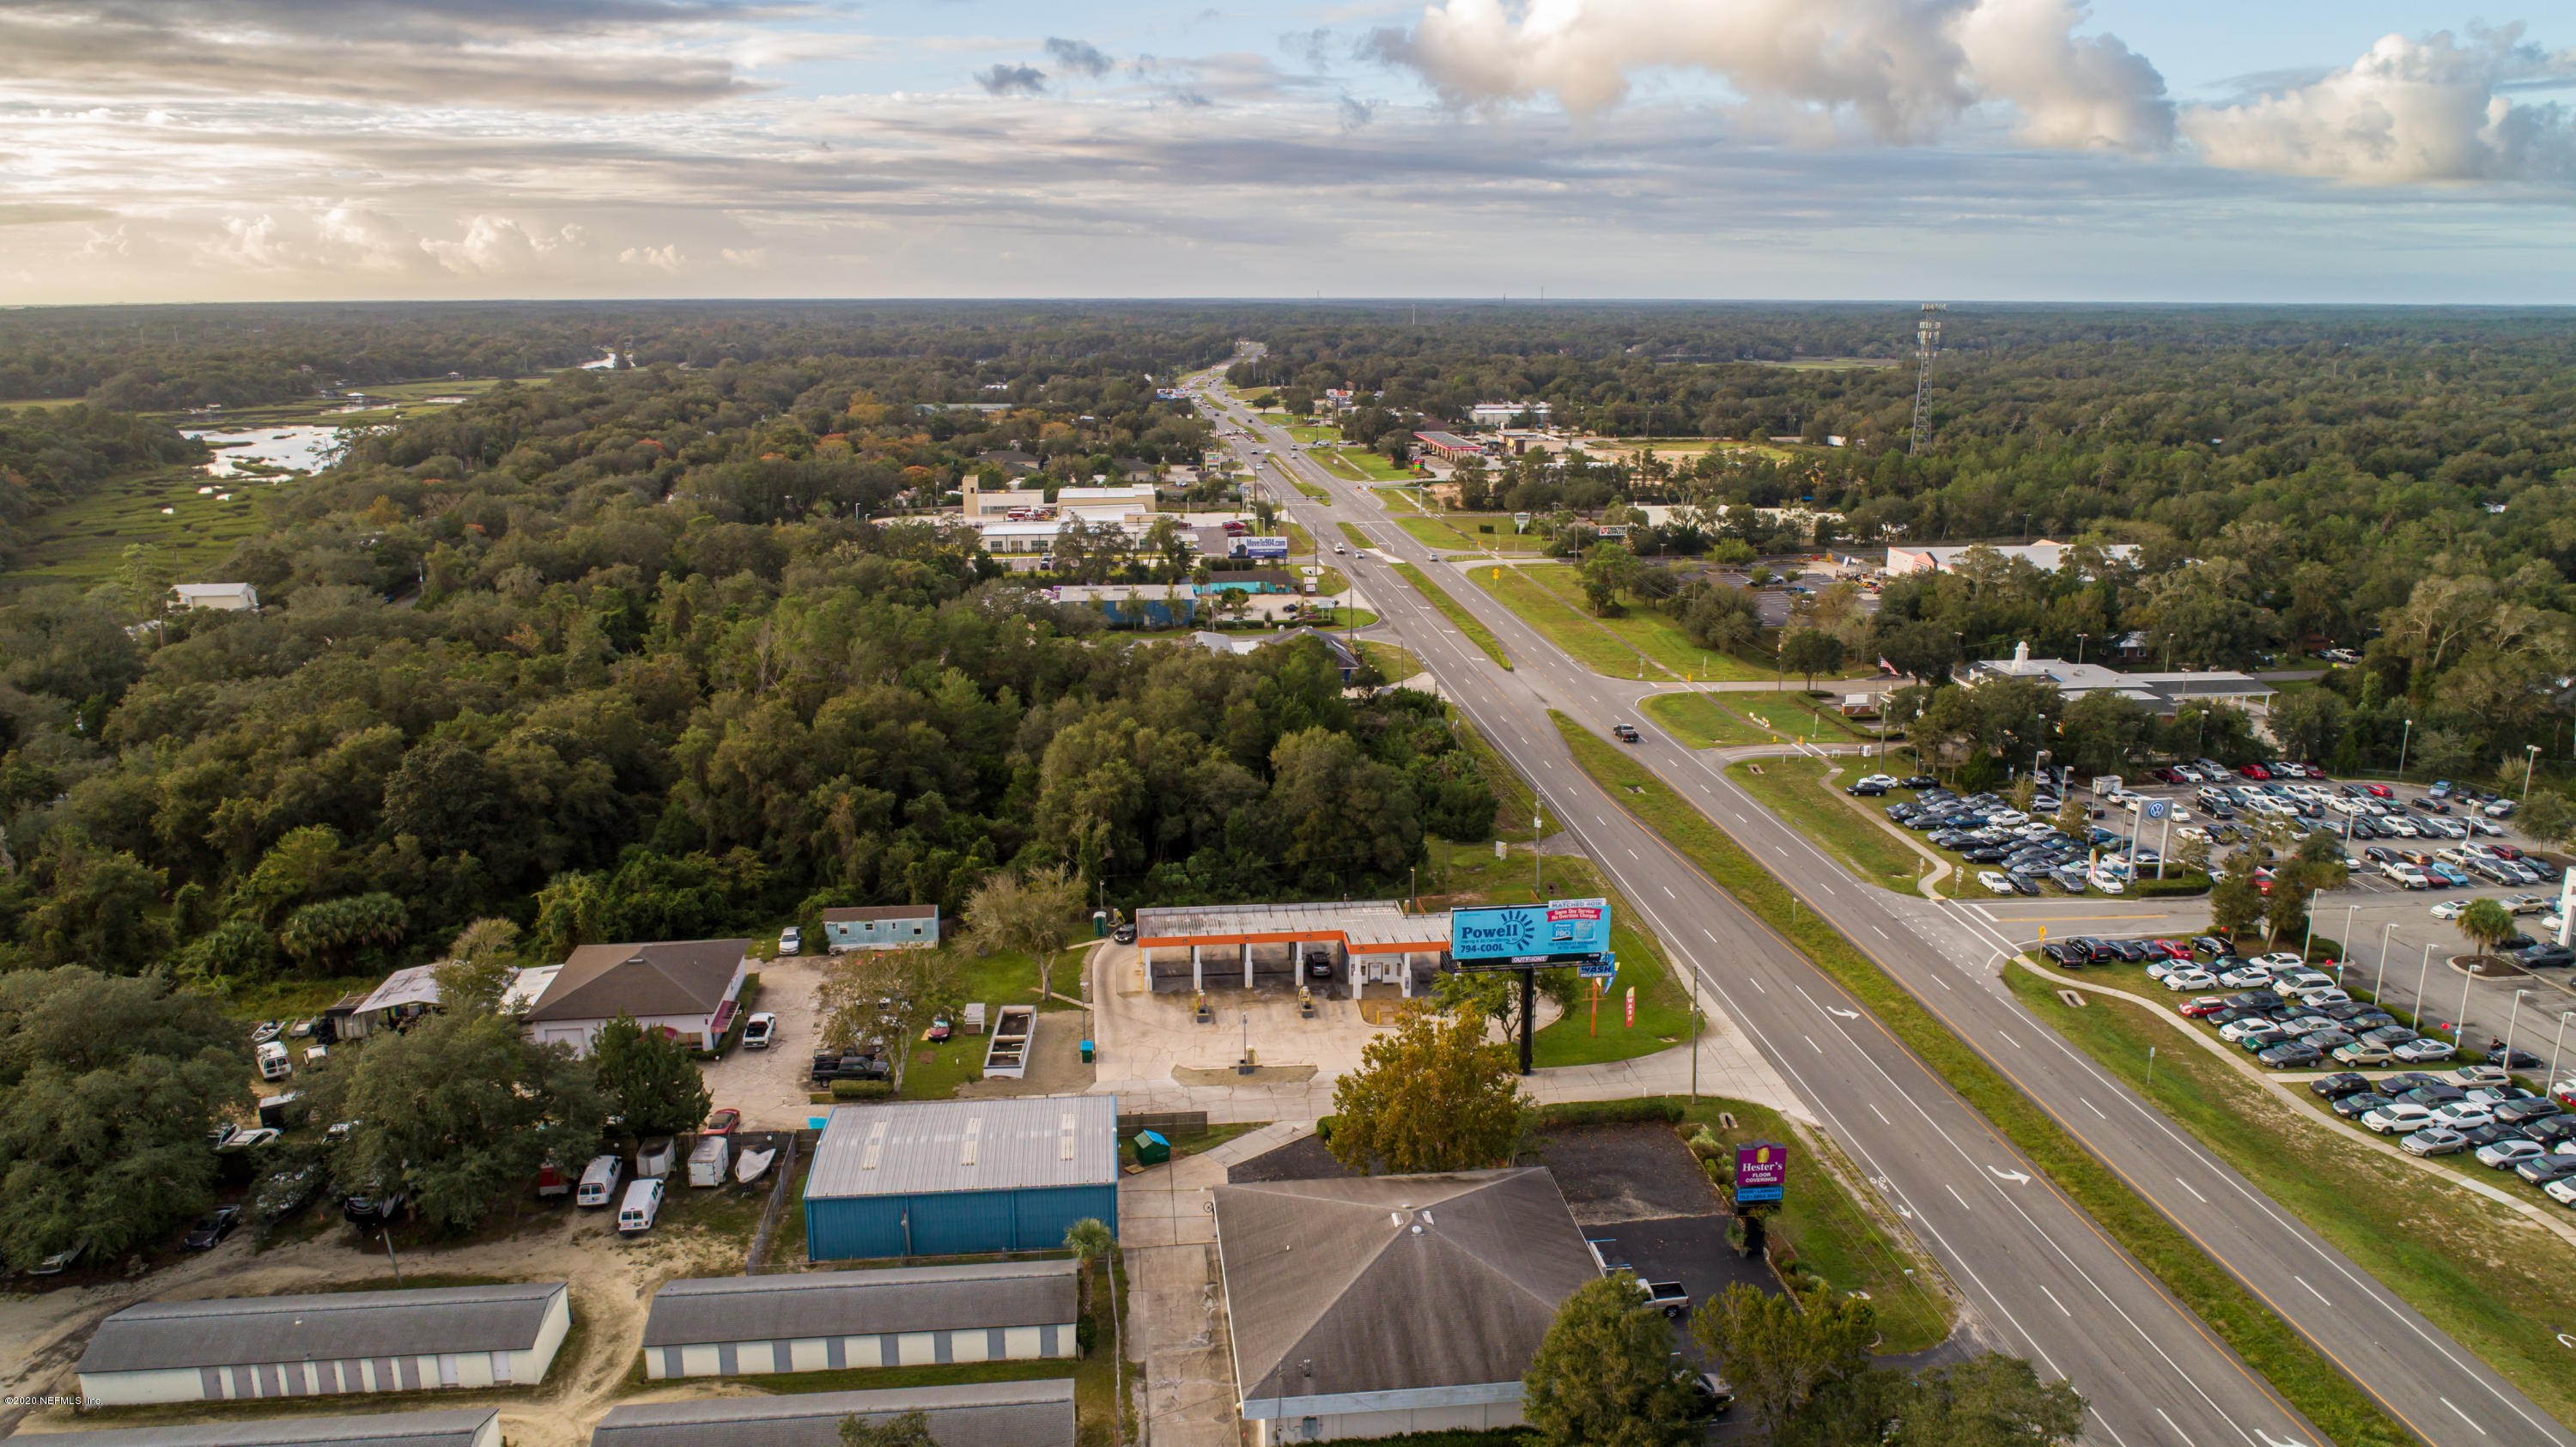 3240 US HIGHWAY 1, ST AUGUSTINE, FLORIDA 32086, ,Commercial,For sale,US HIGHWAY 1,1082375